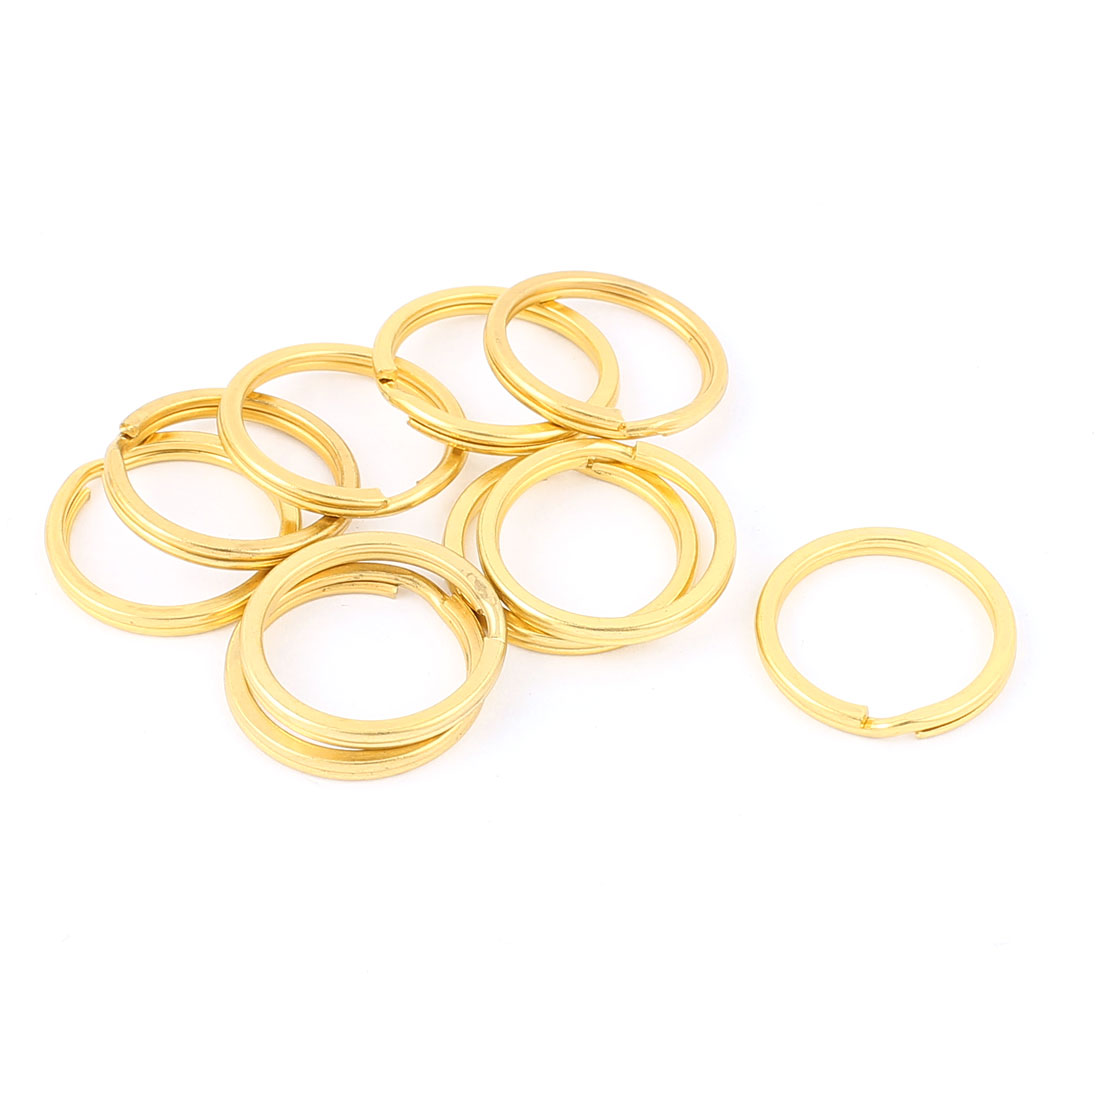 "10 PCS Gold Tone 0.8"" Dia Metal Rings Replacement Split Loop Keyring Keys Holder"